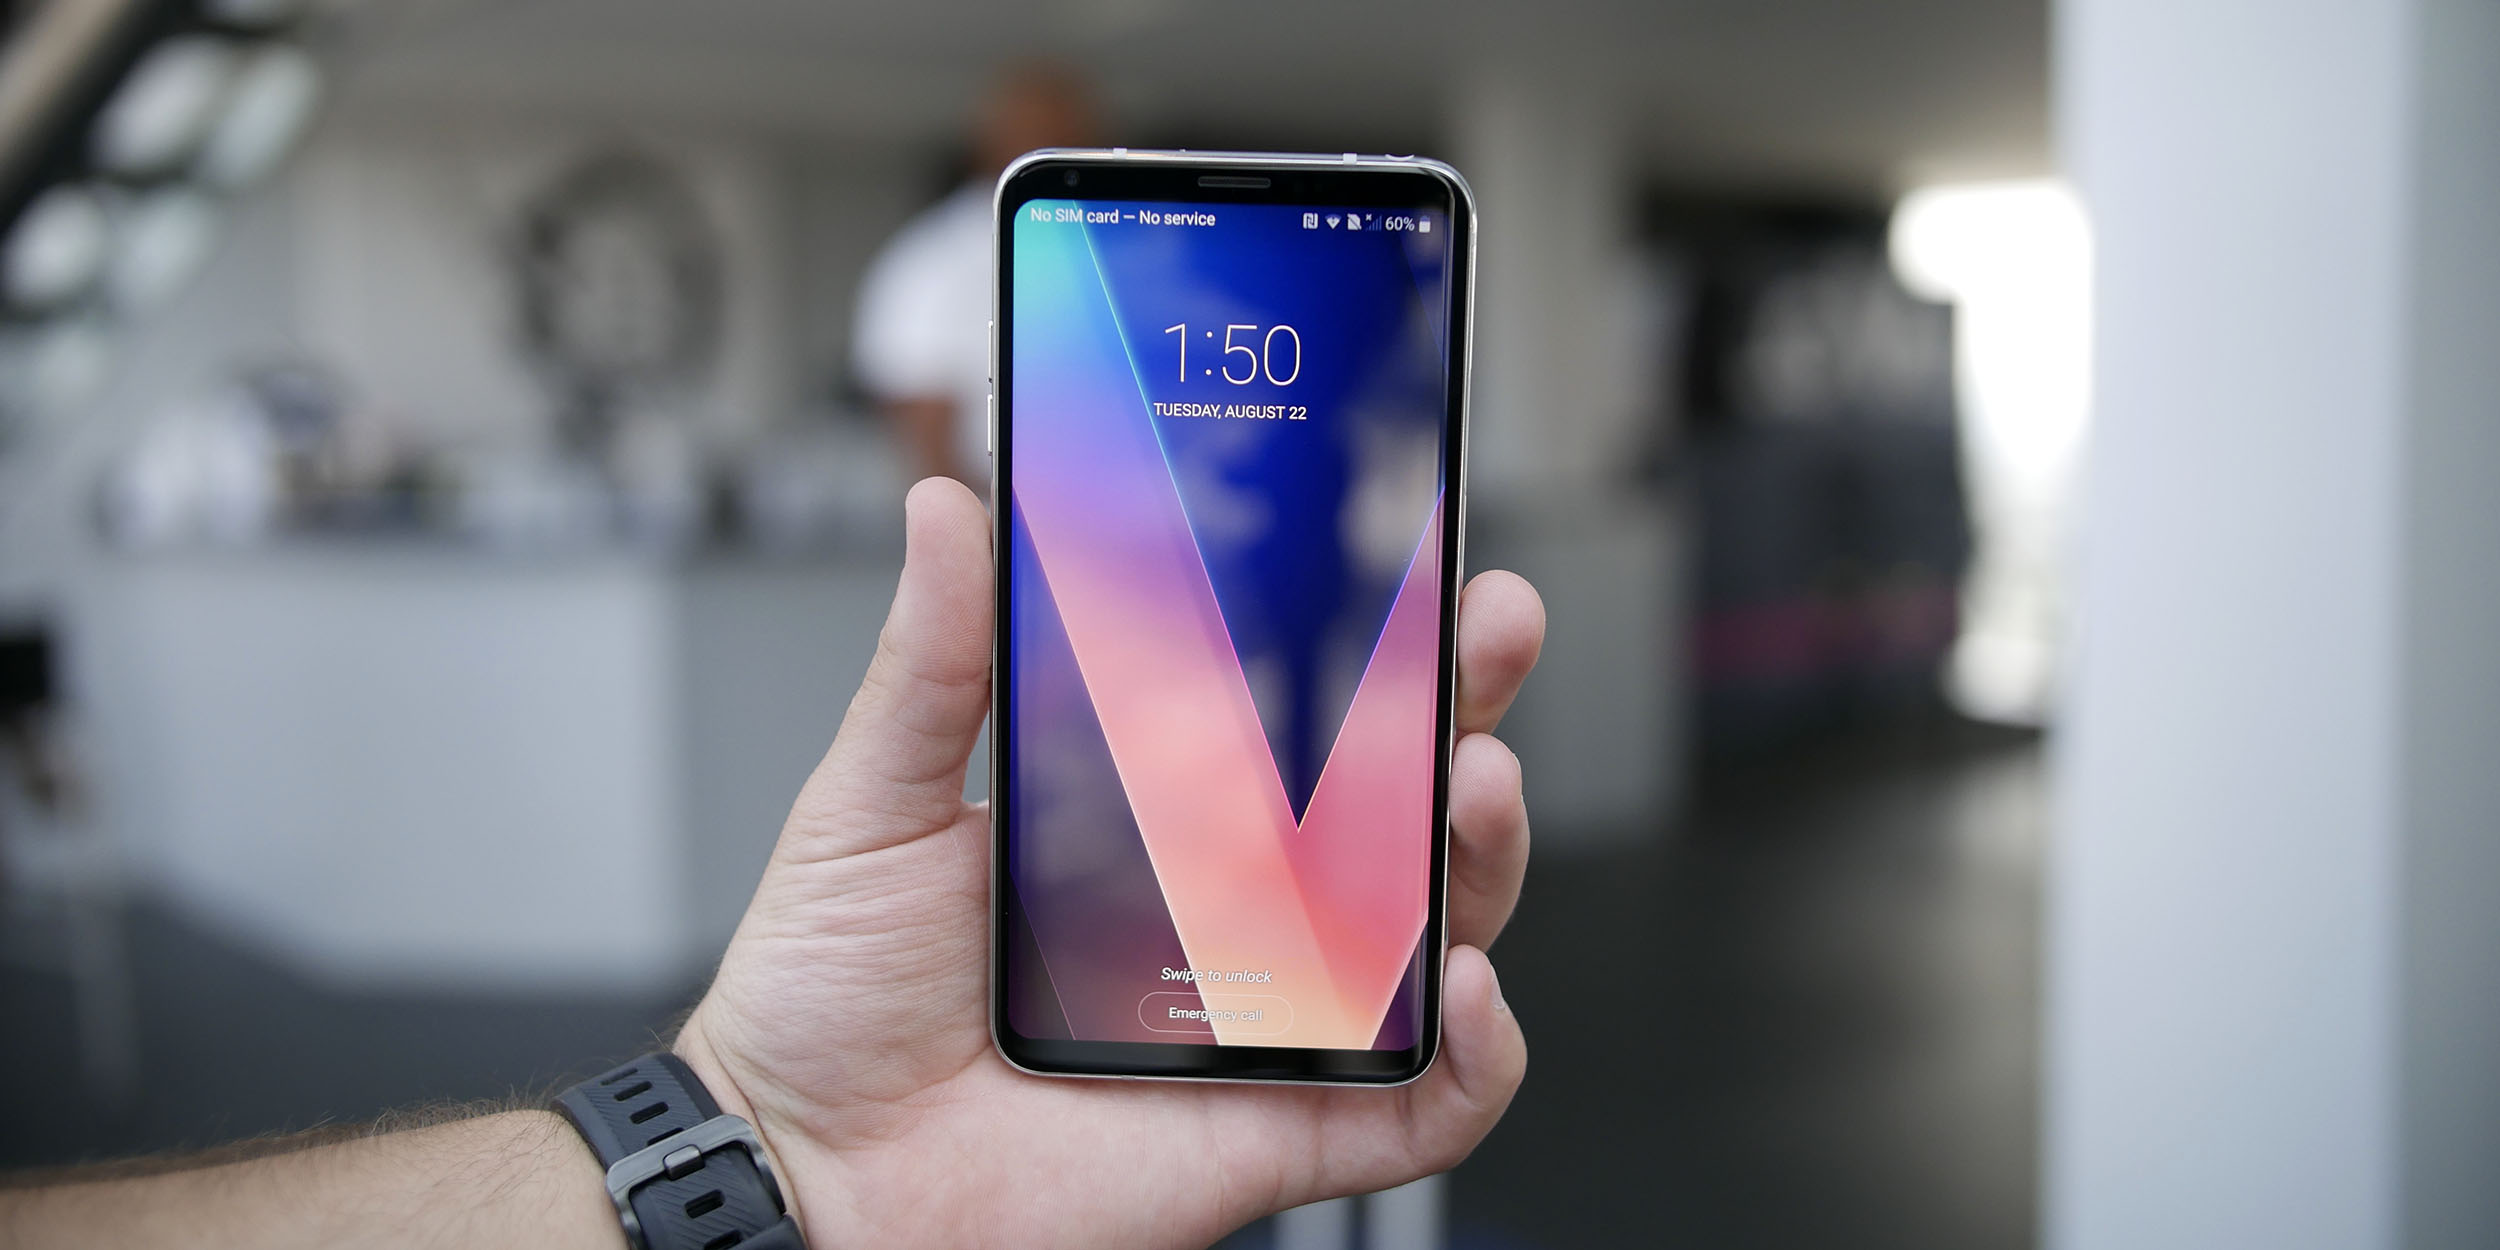 Download The Lg V30 S Official Wallpapers For Your Phone Right Now